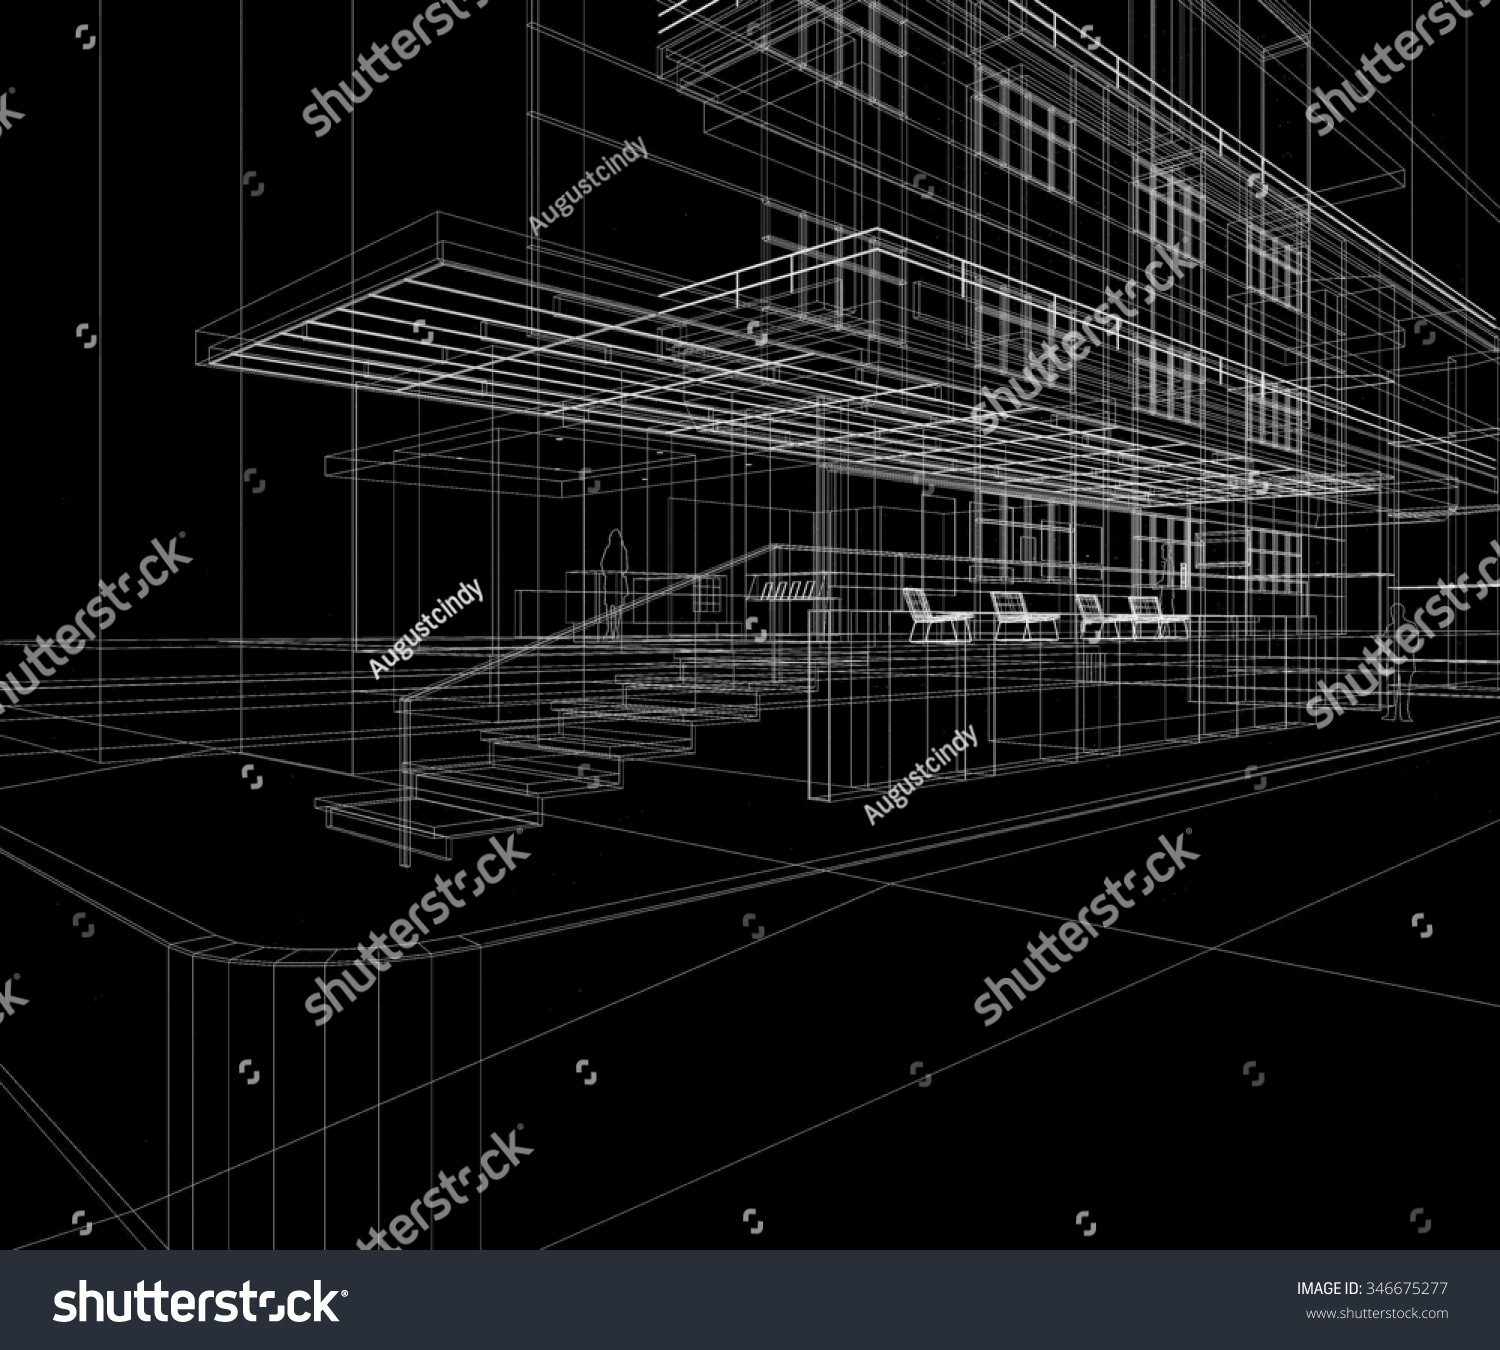 Building exterior perspective wire frame line stock for Exterior background